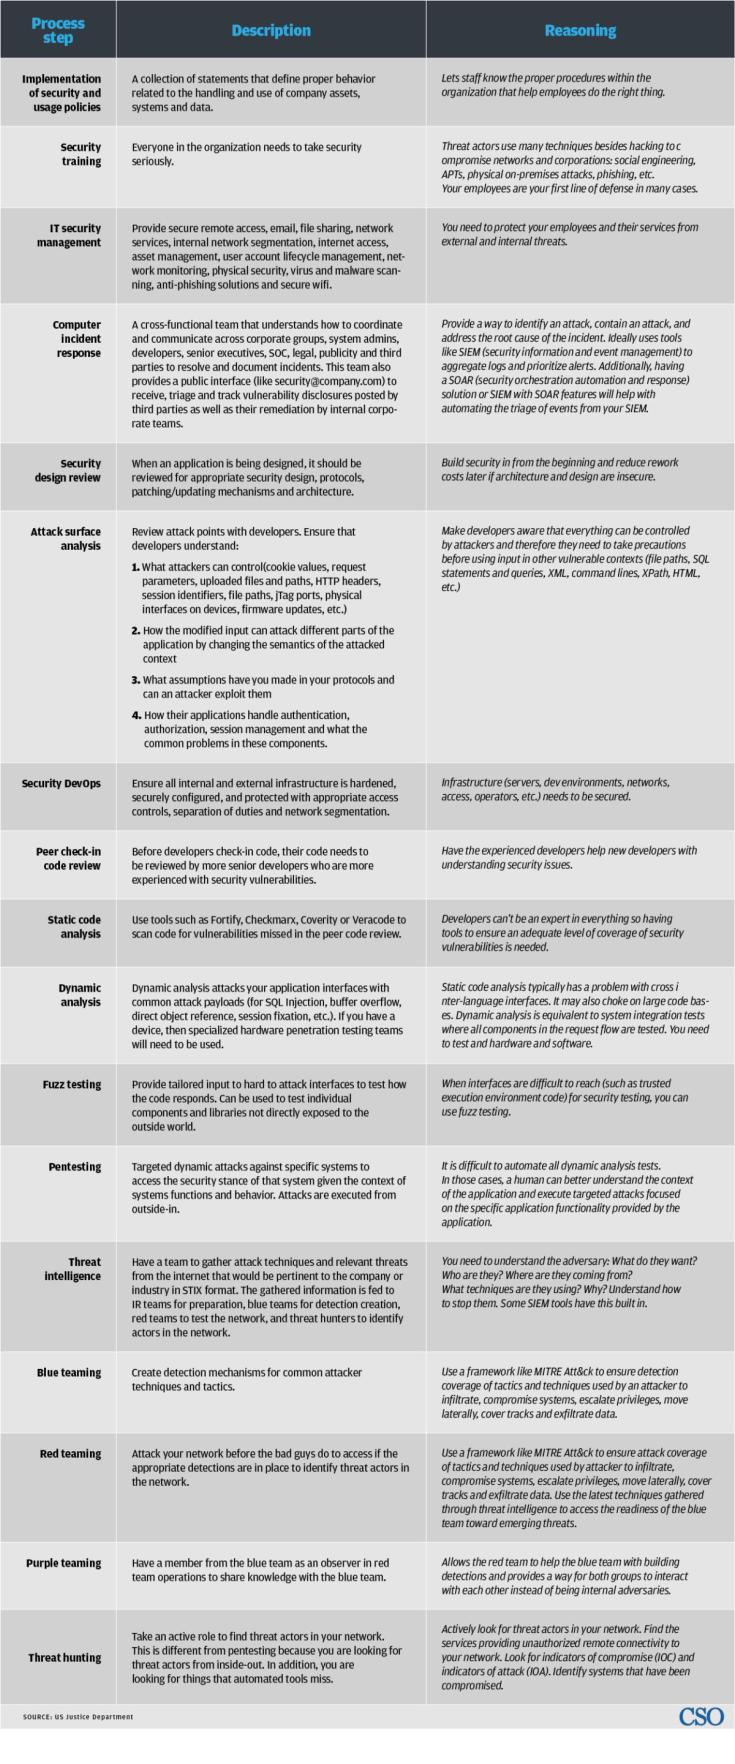 reasonable security chart cso 1250px